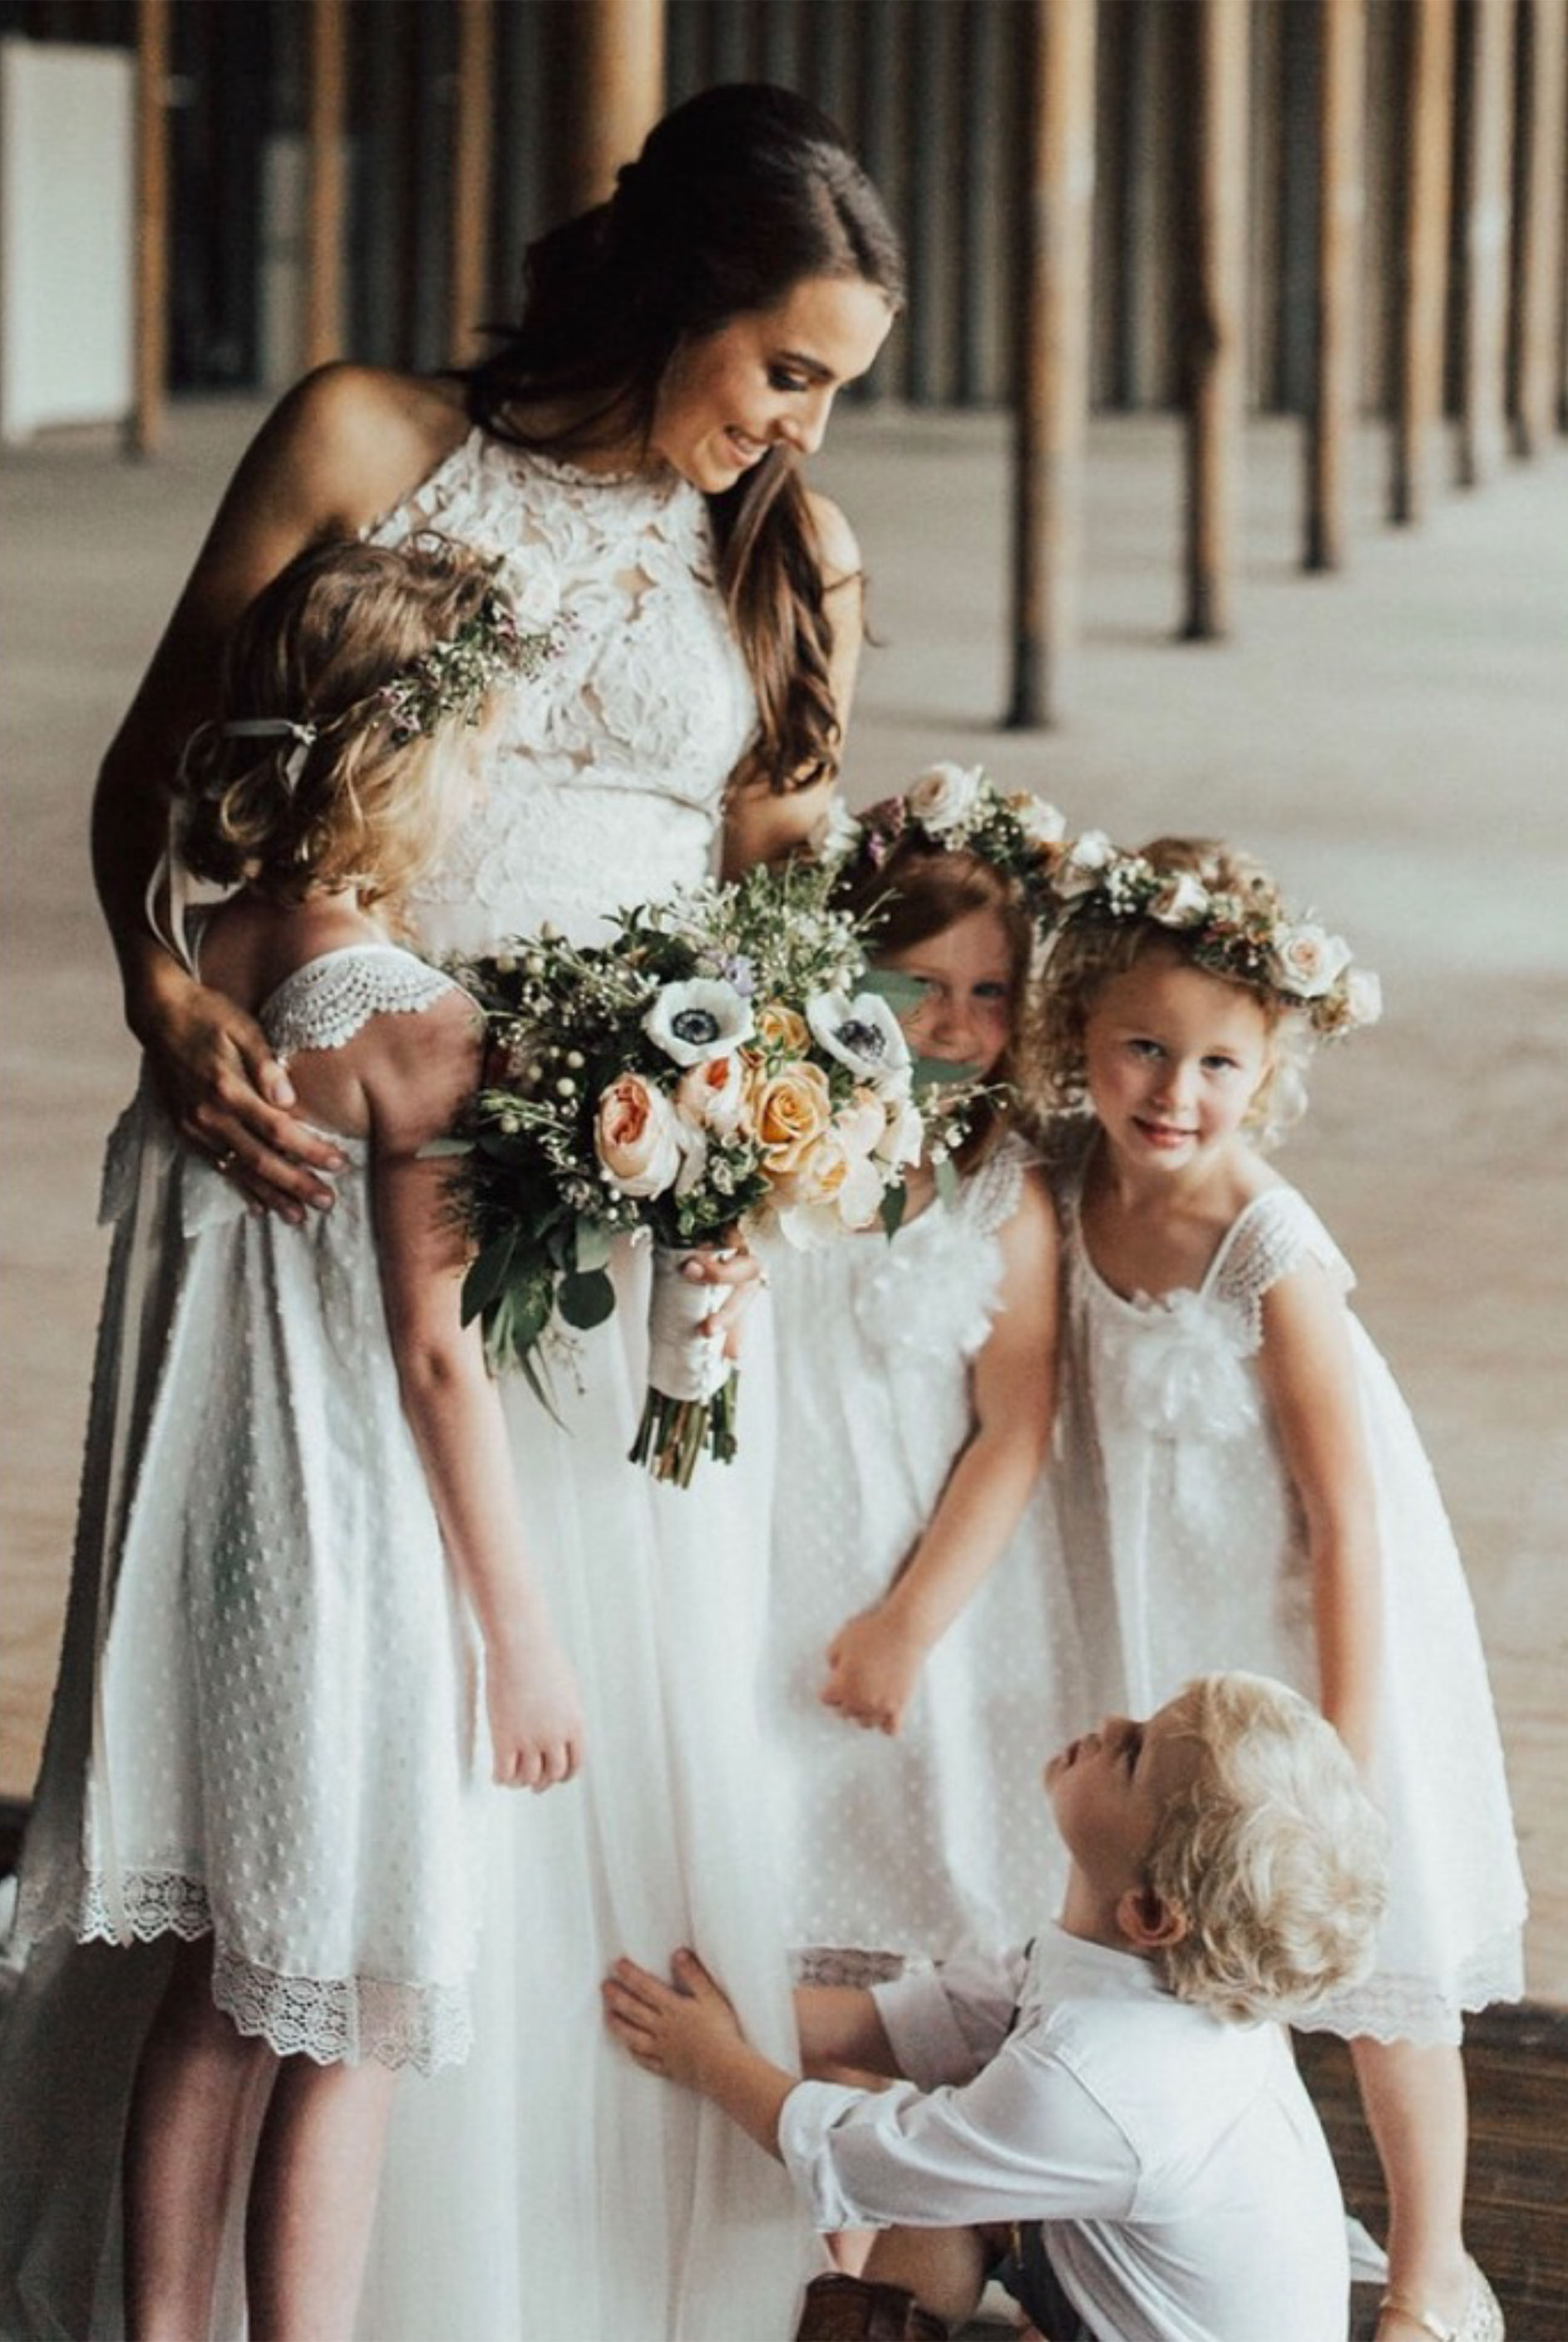 Wedding Bridesmaid in a white dress with beautiful floral arrangement.